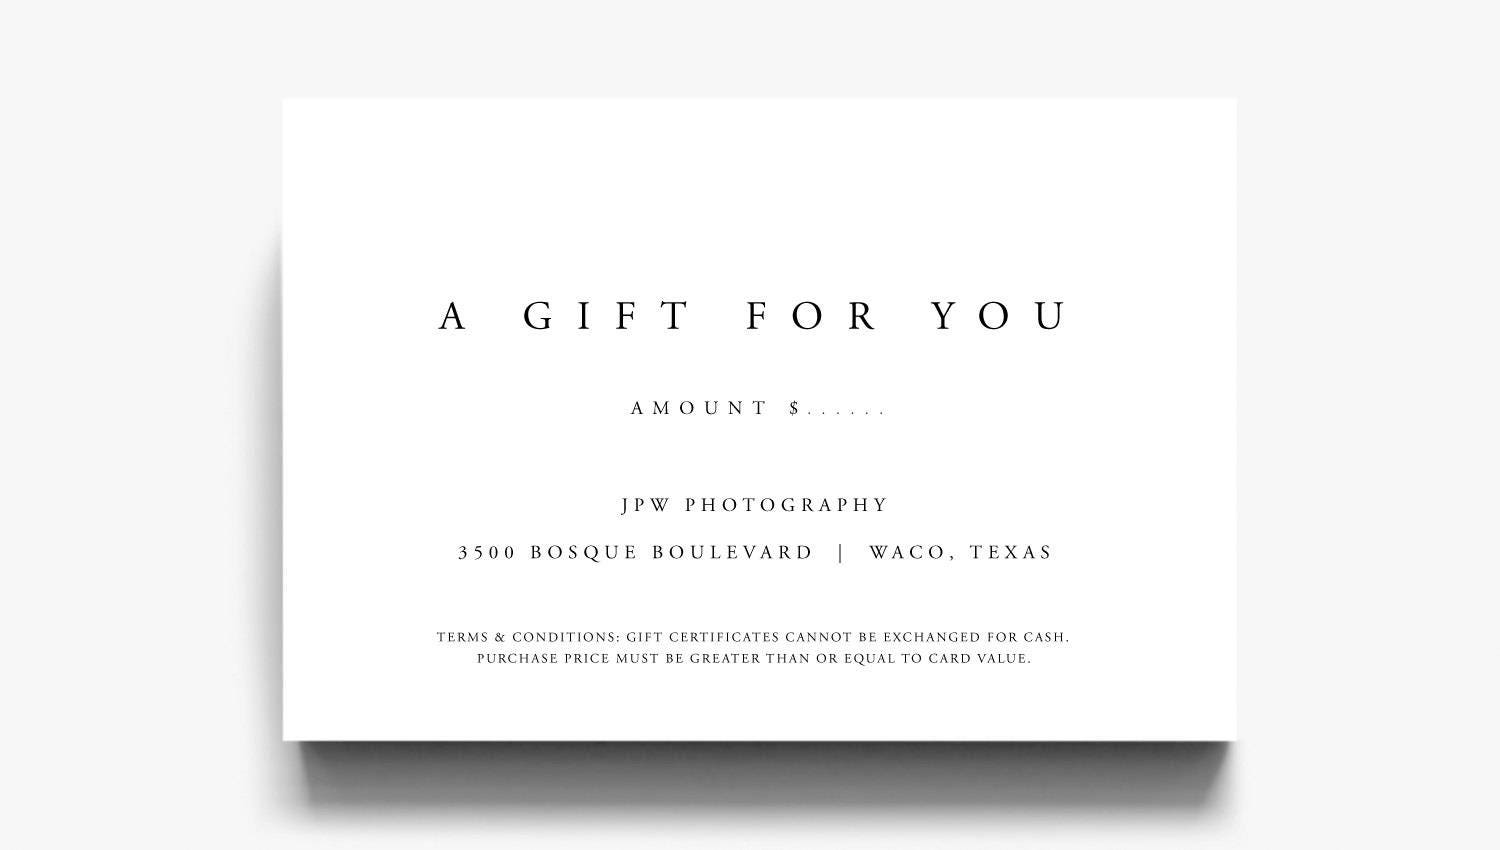 Gift Certificate Template A Gift For You Gift Voucher